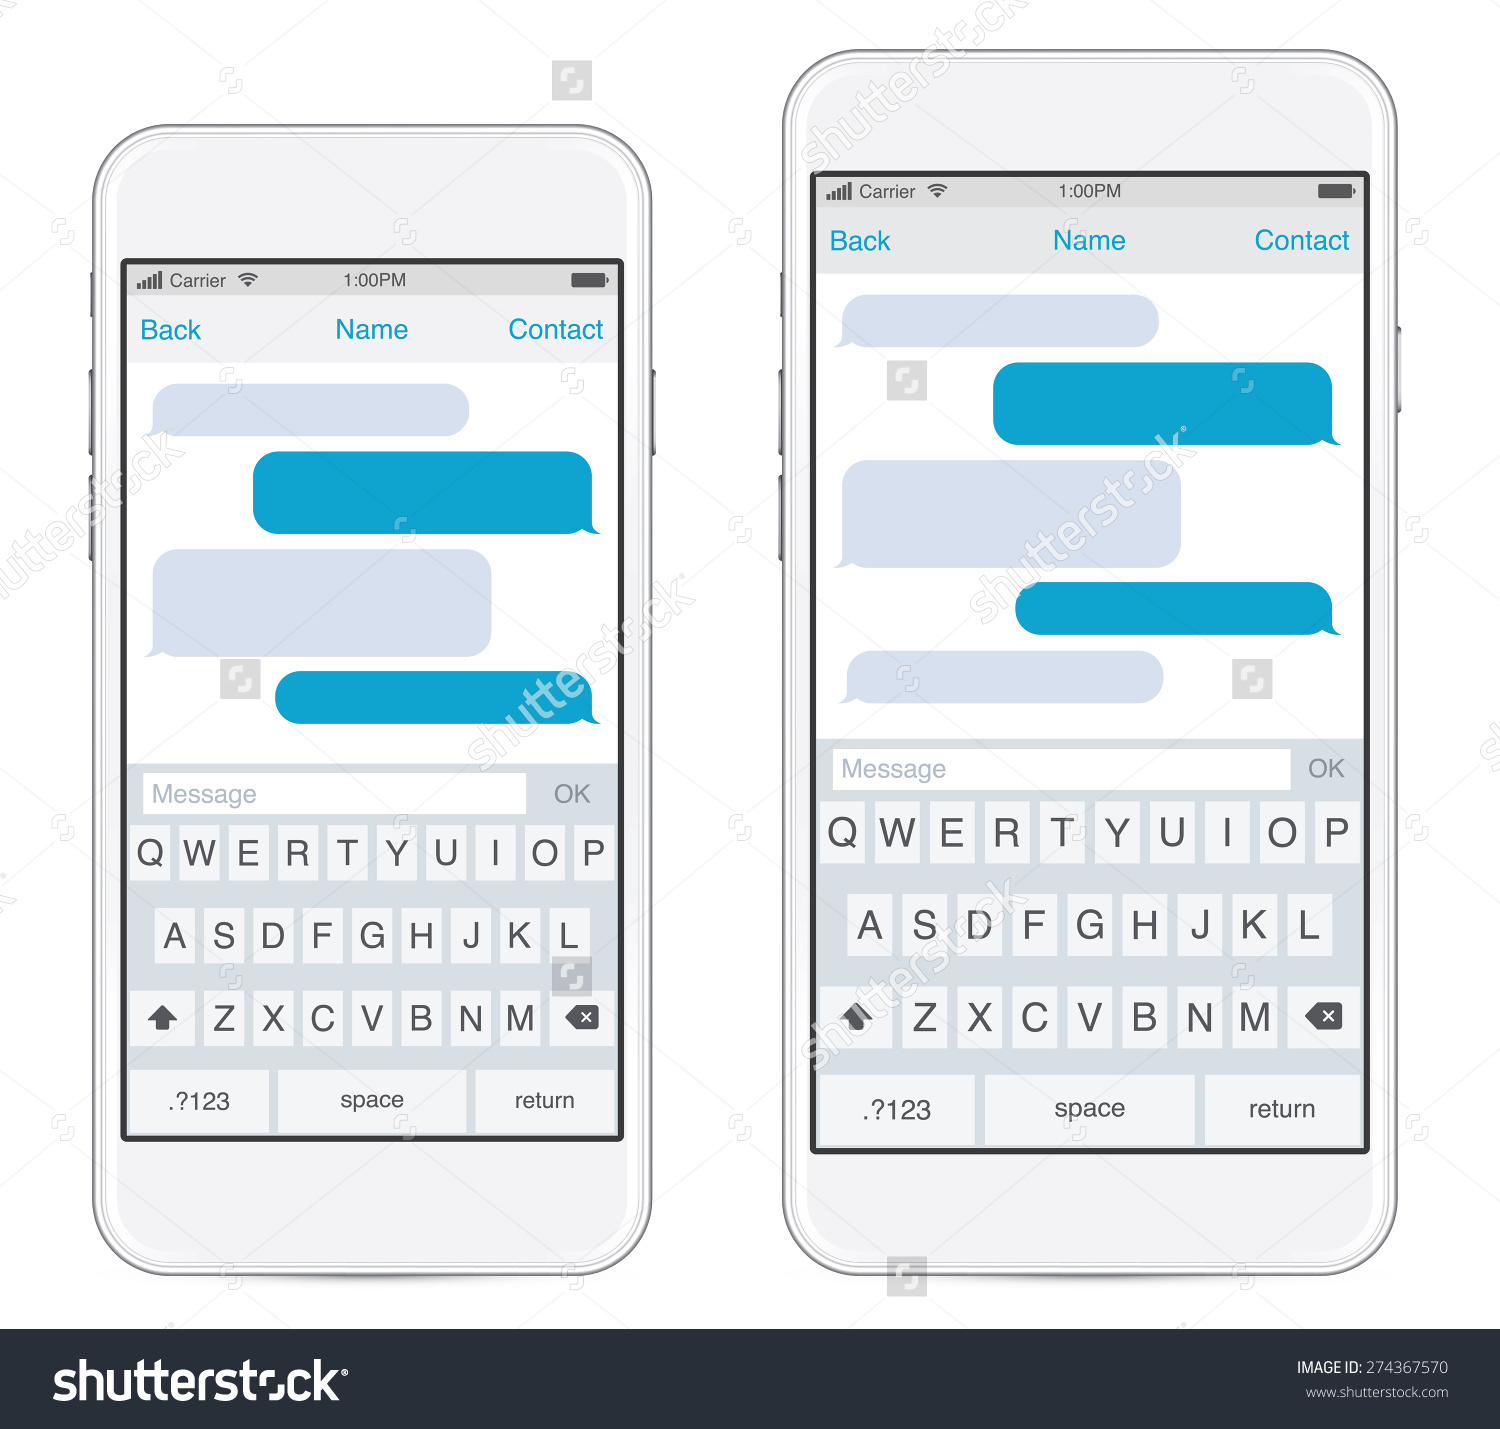 Iphone text message clipart image free stock Iphone text bubble clipart - ClipartFest image free stock